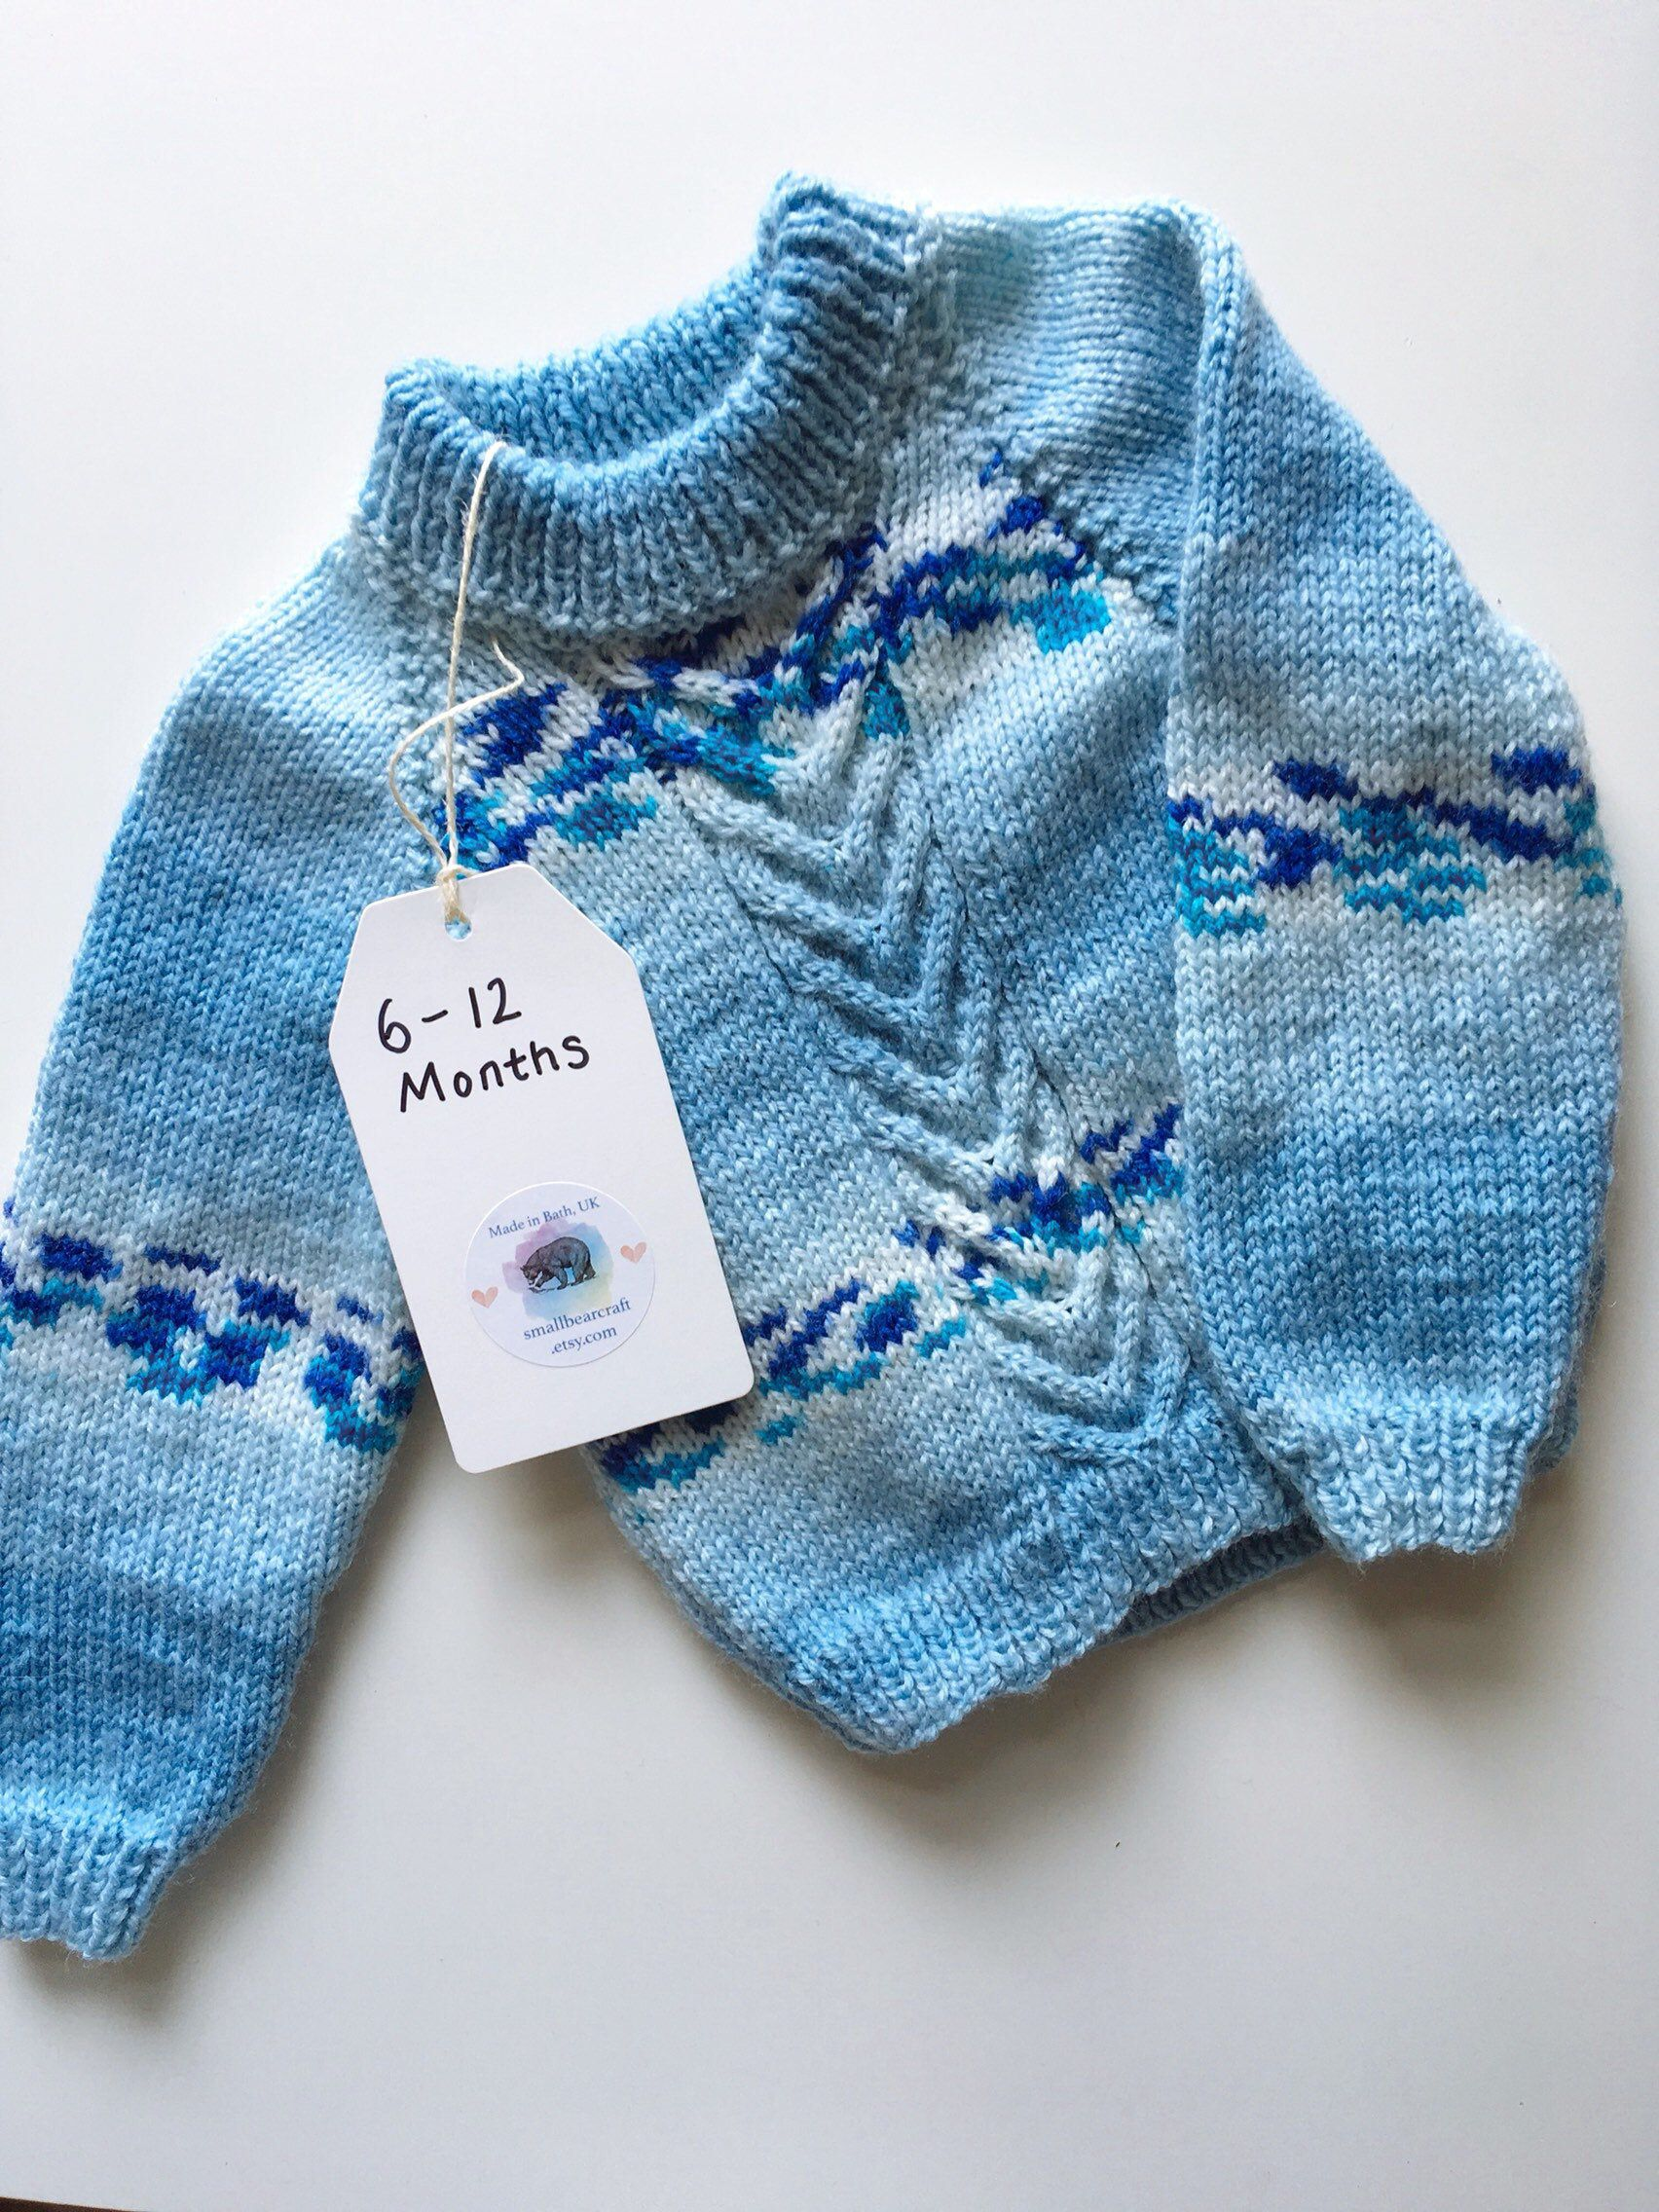 31+ Craft smart yarn ombre information